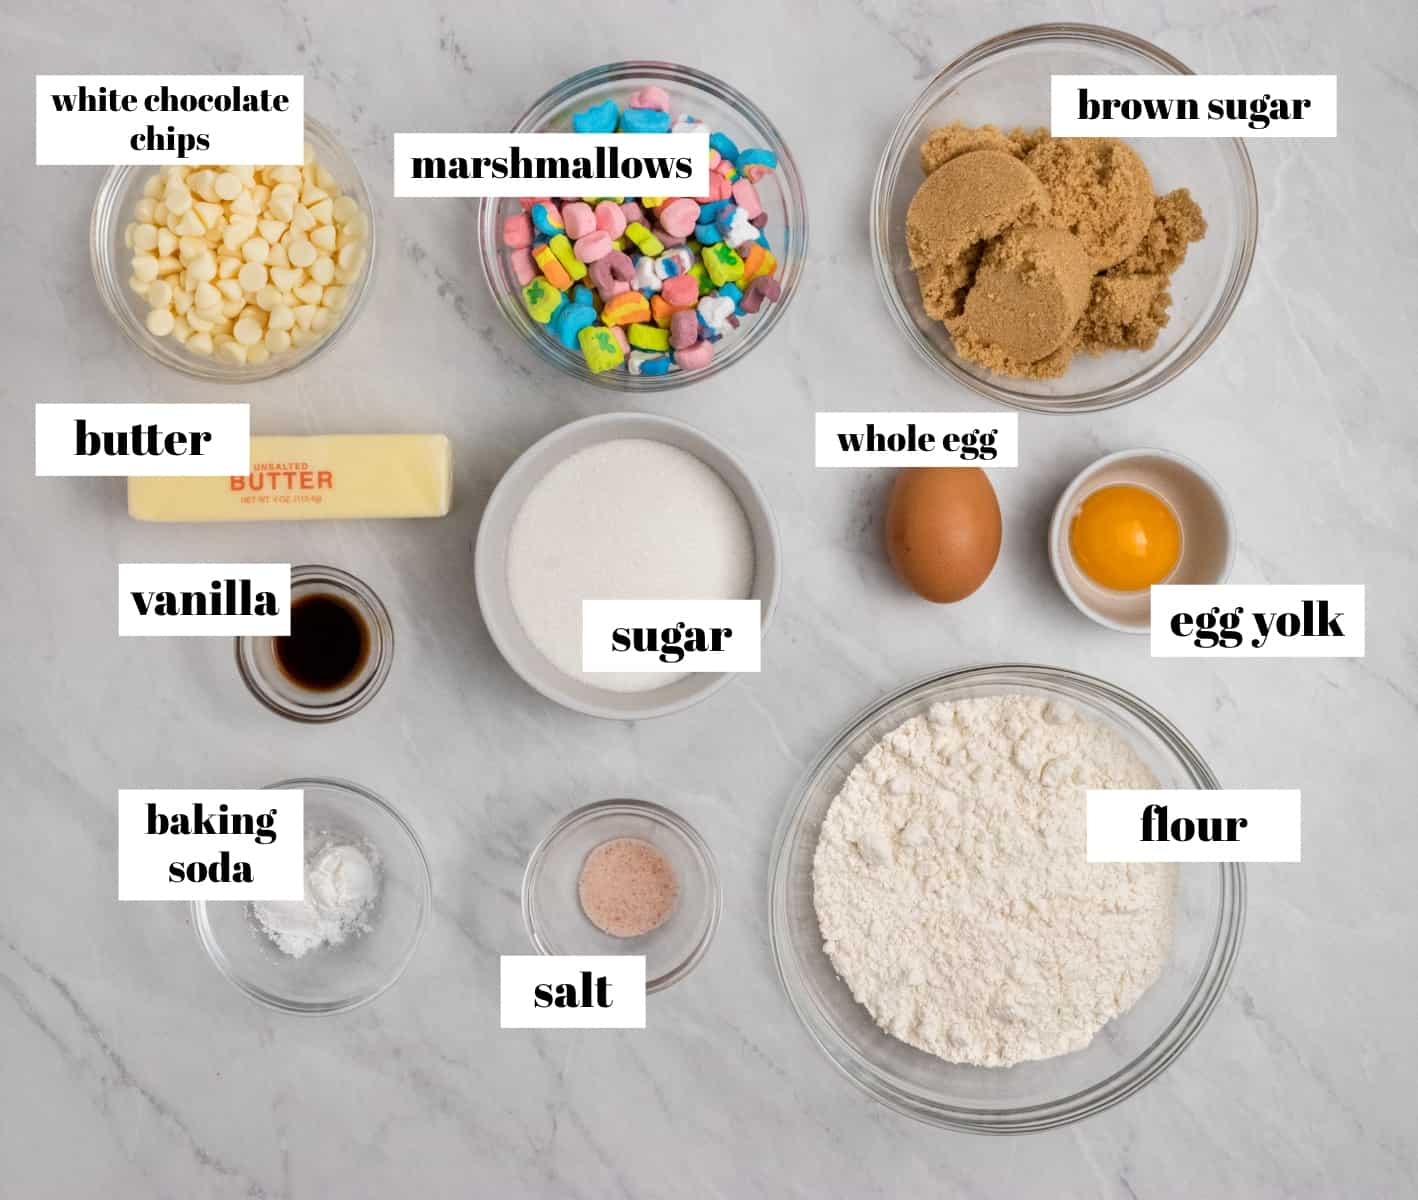 Flour, white chocolate chips, egg yolk, and ingredients labeled on counter.